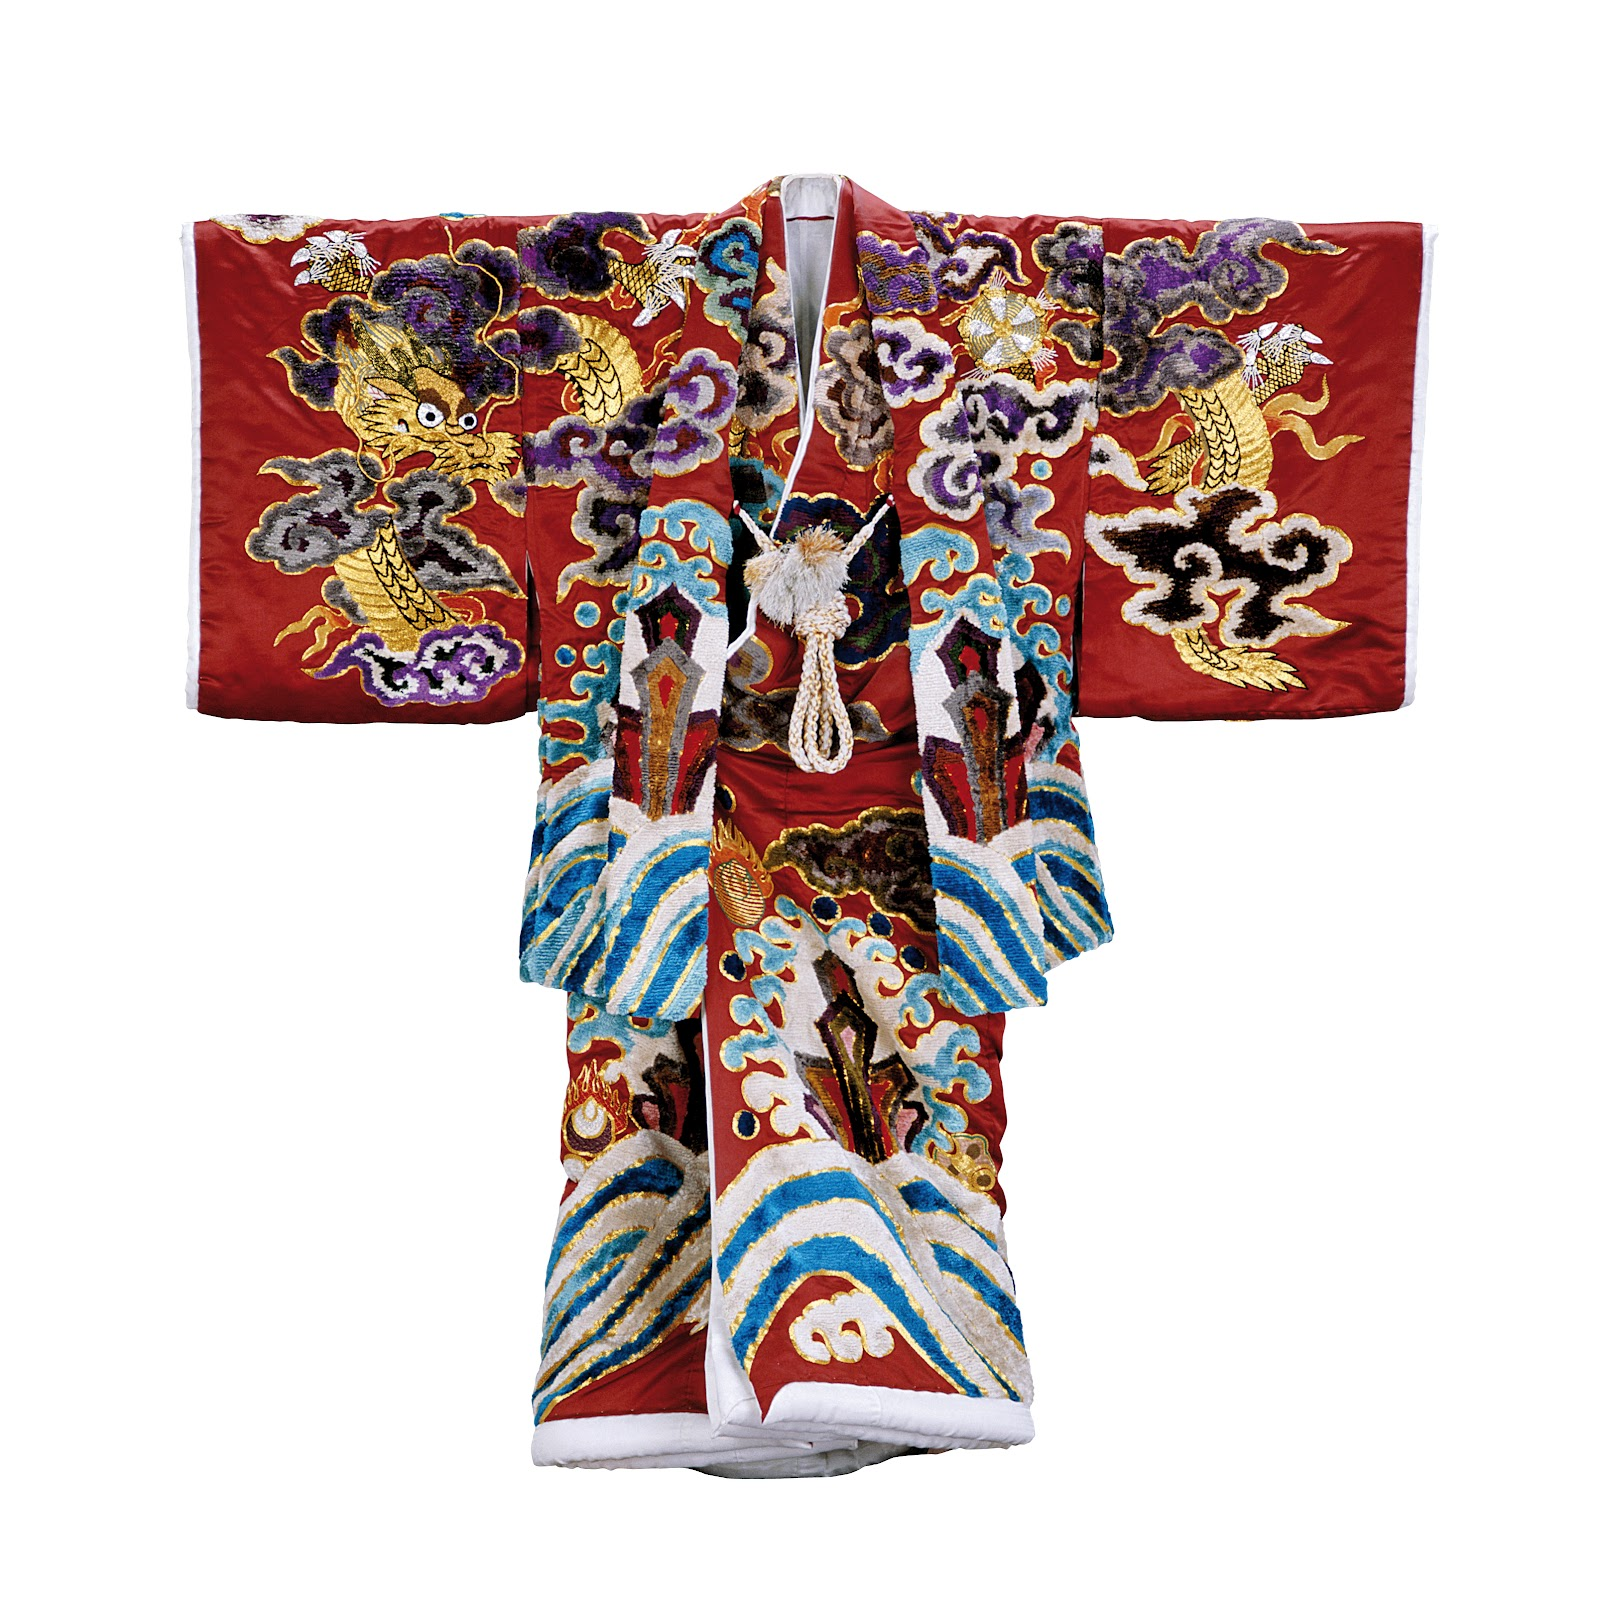 The Art Of Kabuki Japanese Theatre Costumes